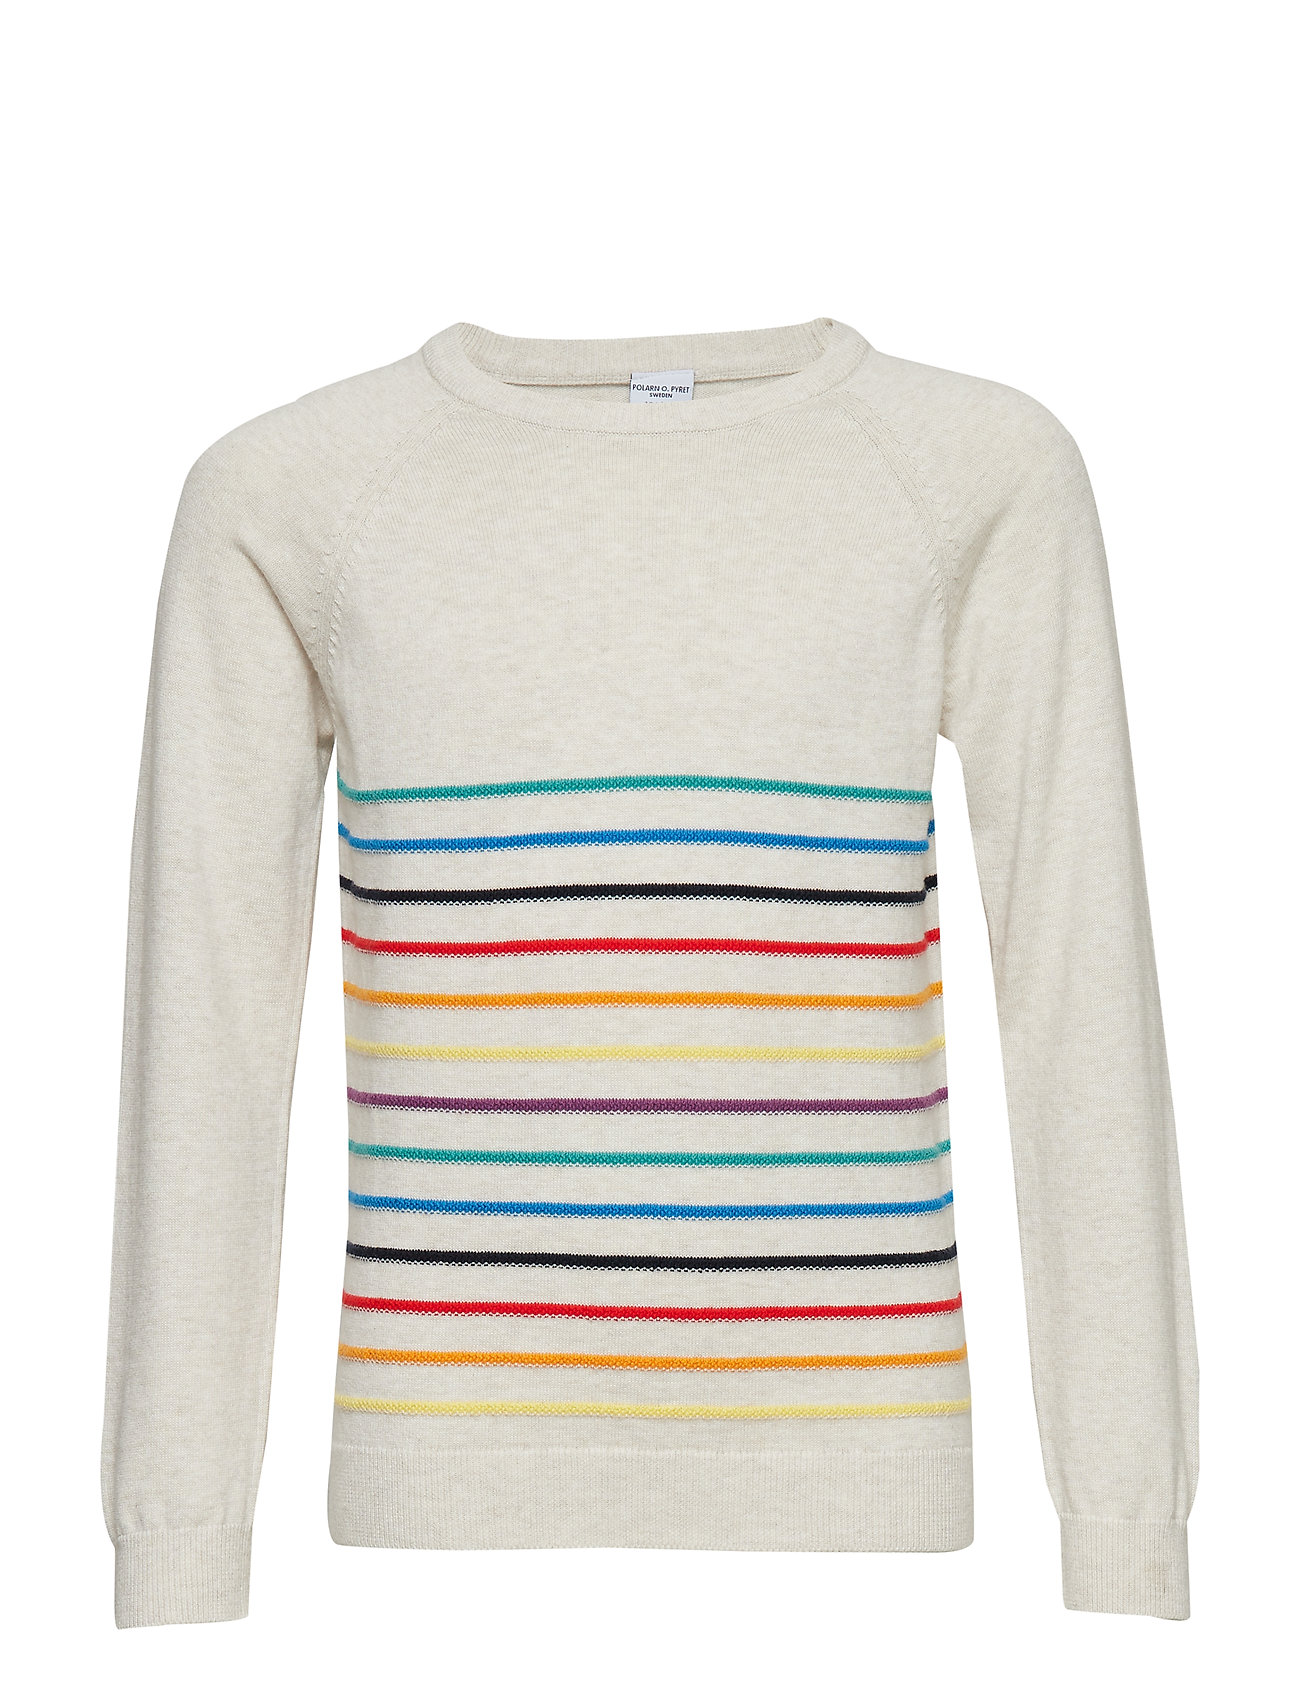 Polarn O. Pyret Sweater Knitted School